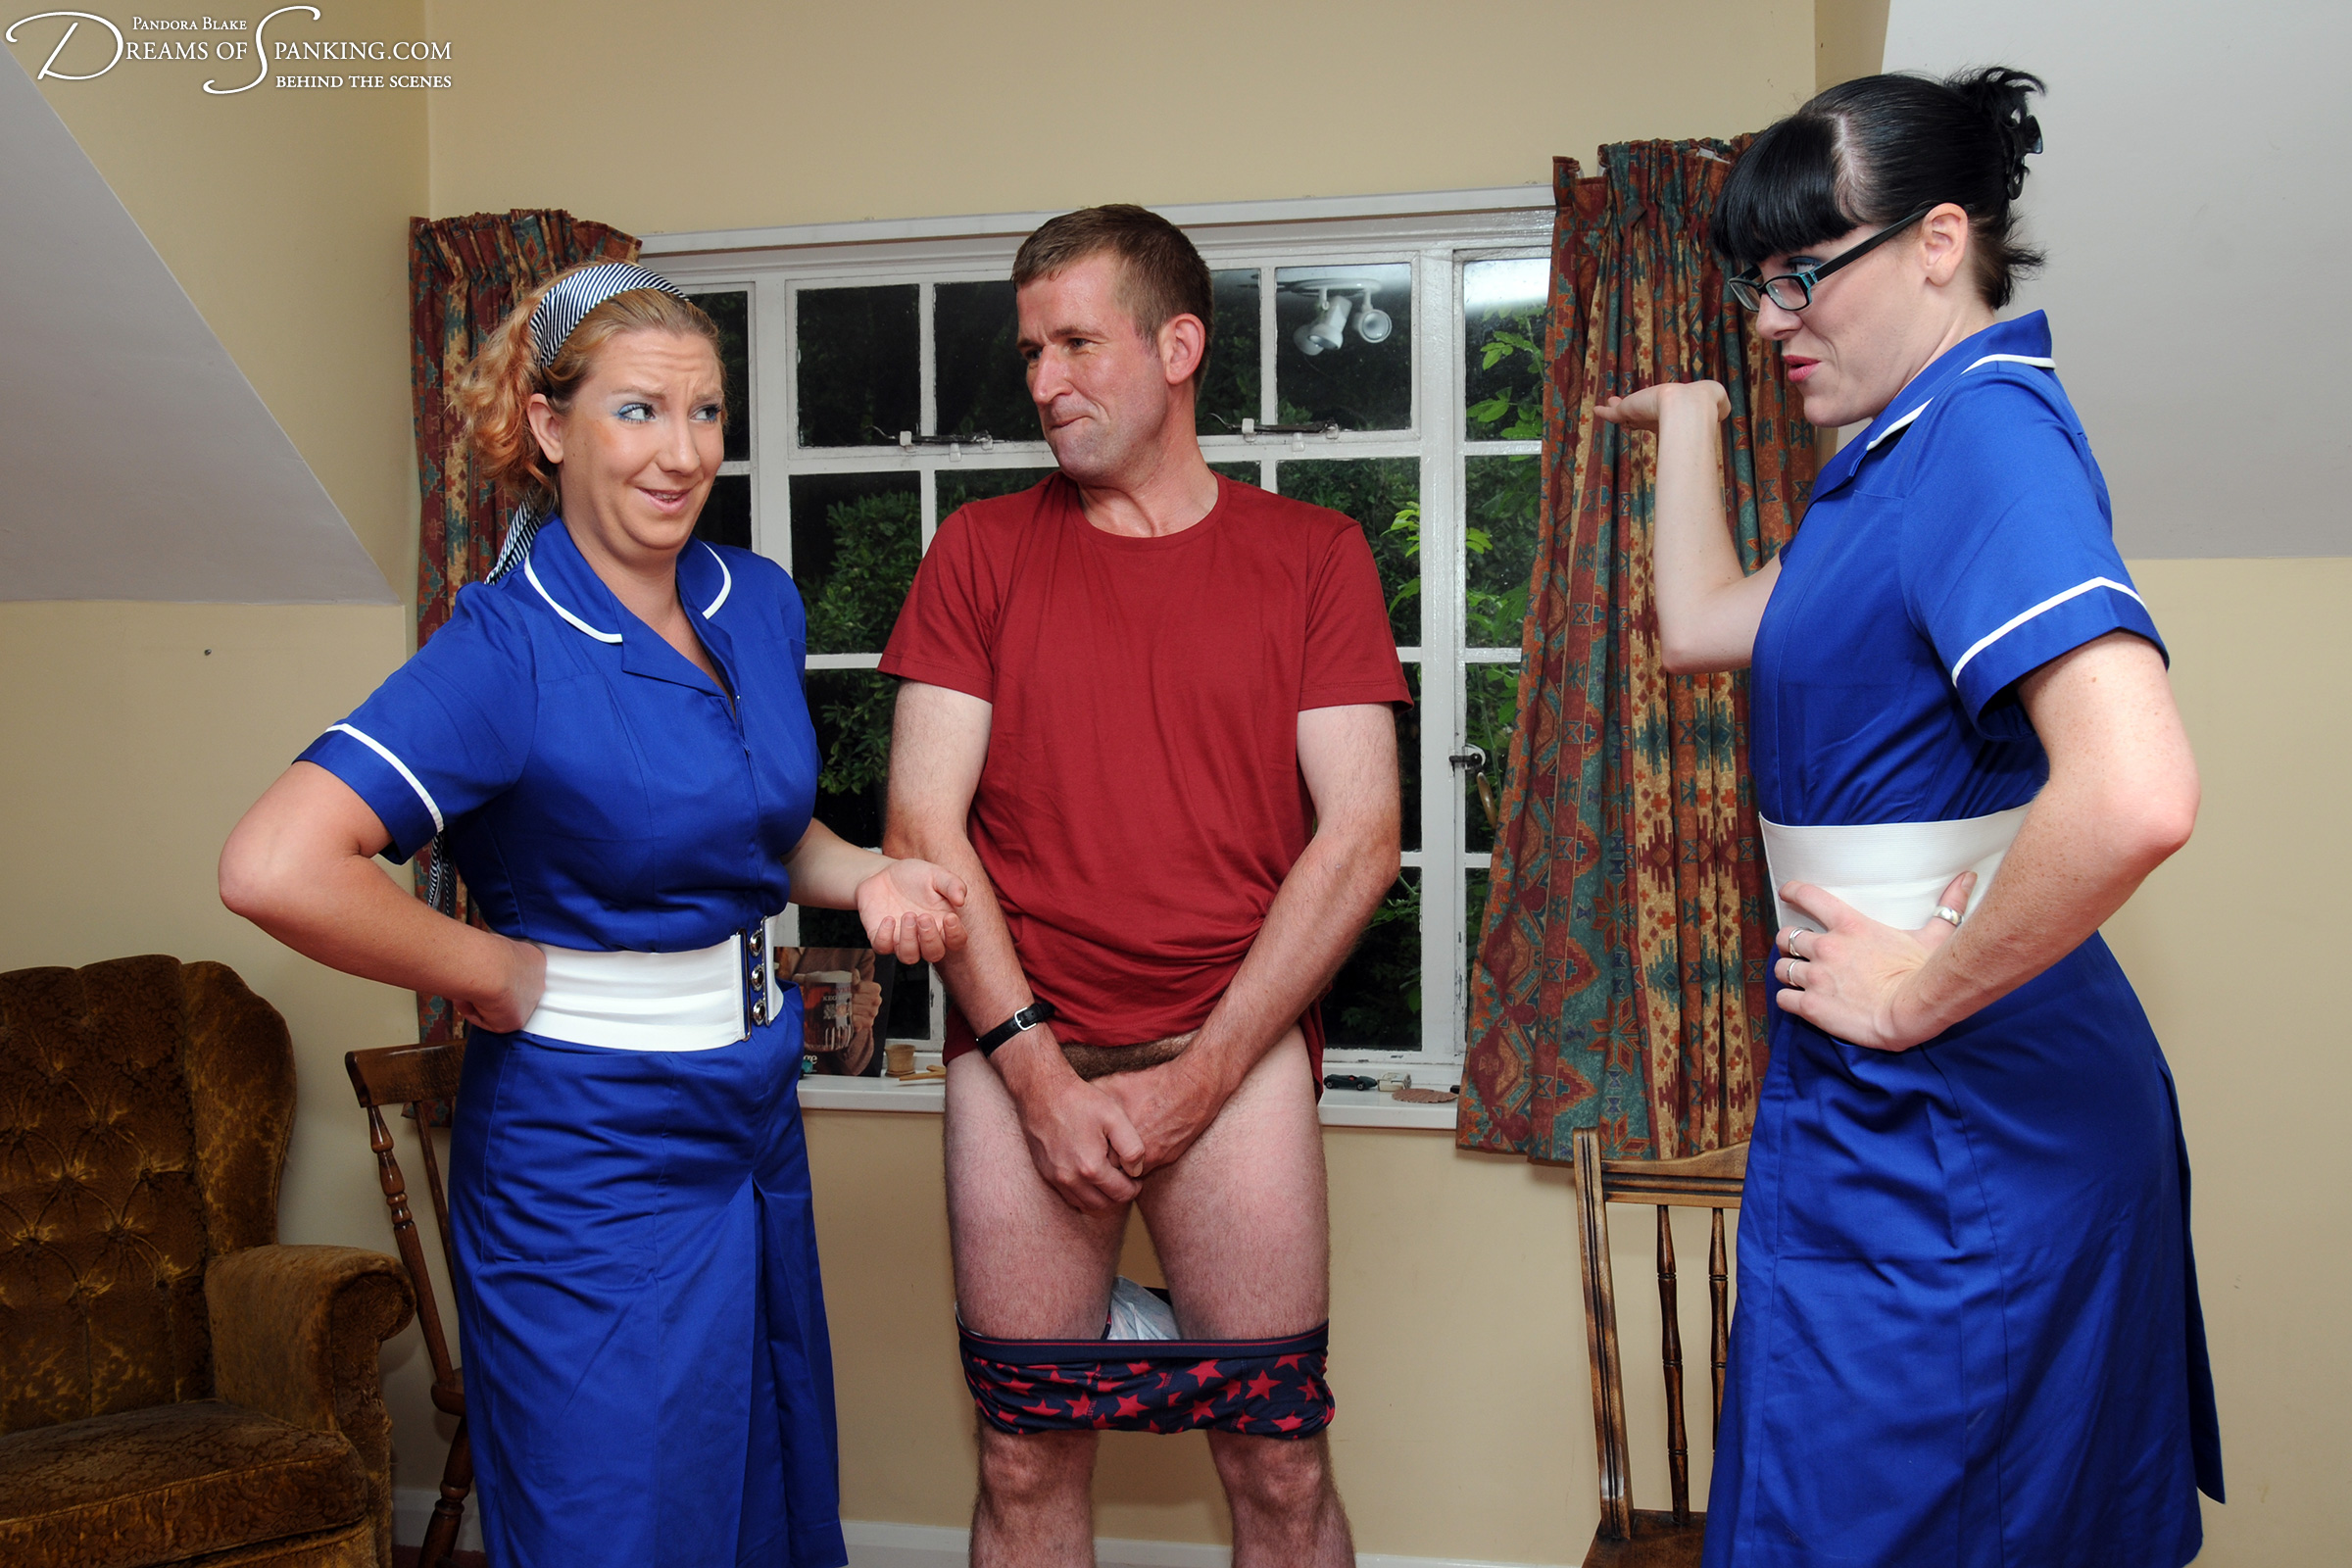 Hilarity behind the scenes in Nursing a Grudge at Dreams of Spanking